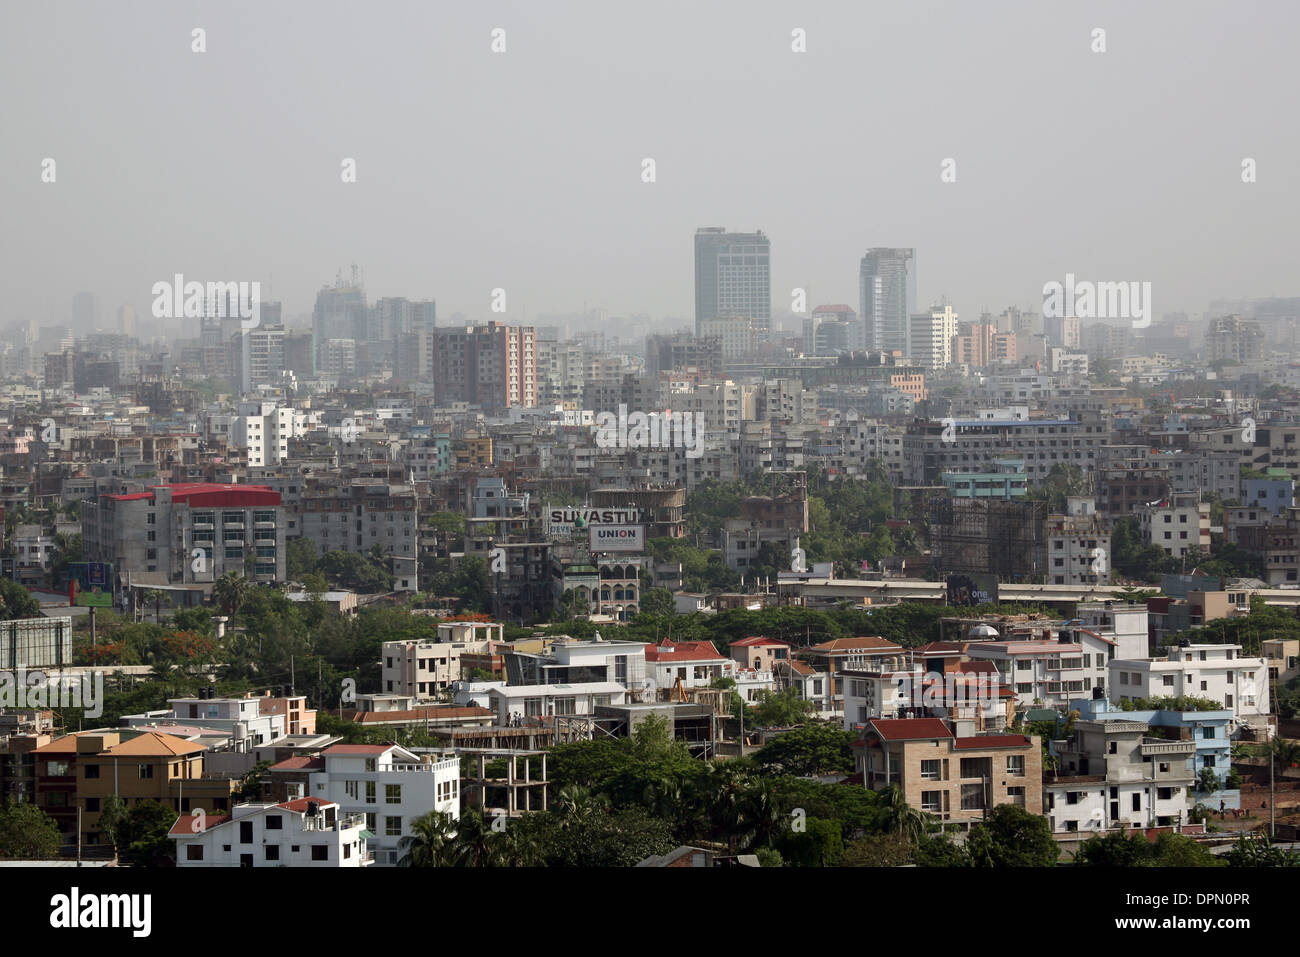 Early morning overview of the city of Dhaka, Bangladesh - Stock Image